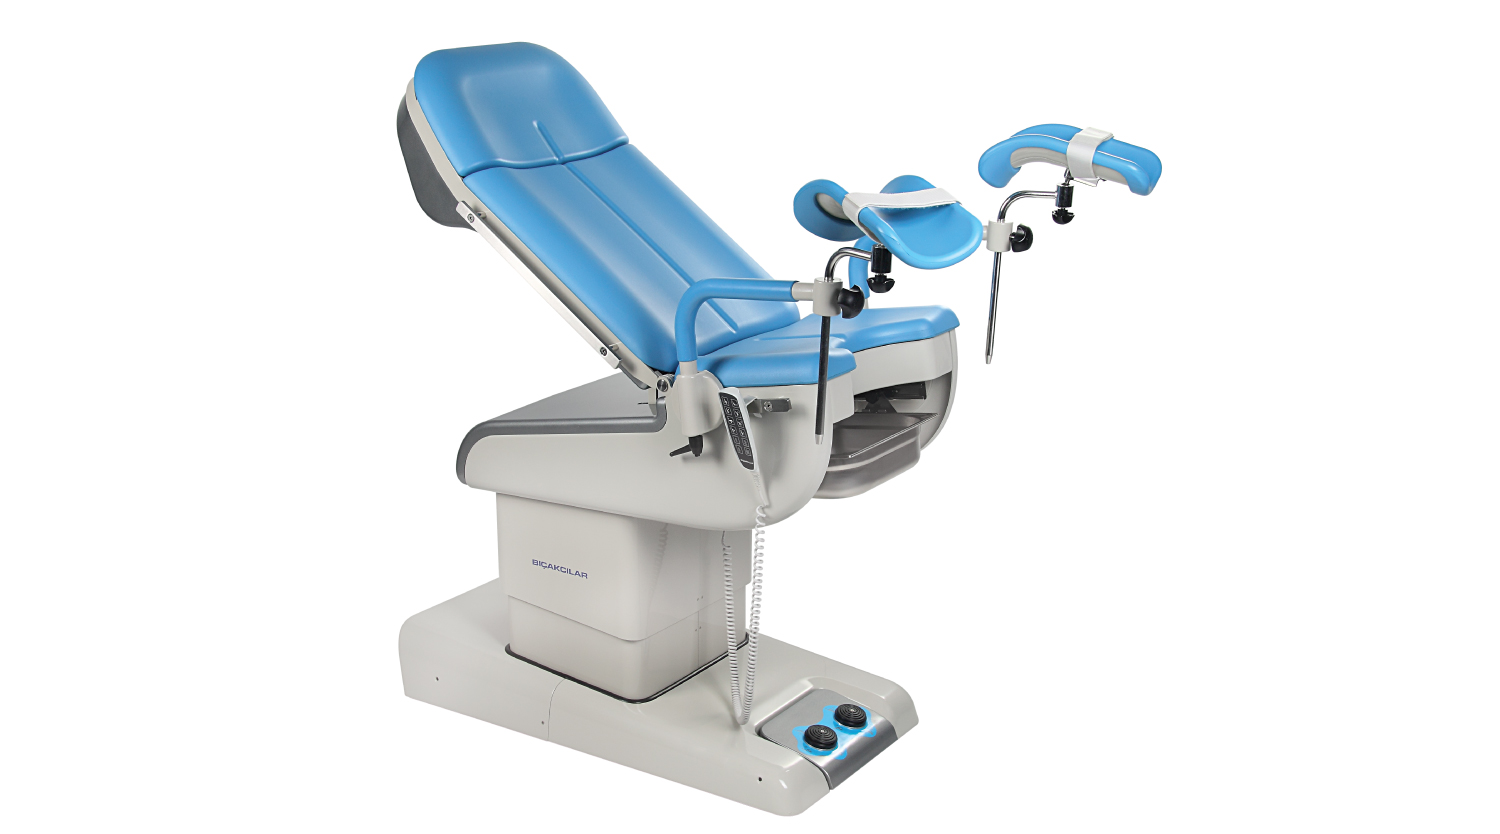 EXAMLINE 740 GYNECOLOGICAL EXAMINATION TABLE